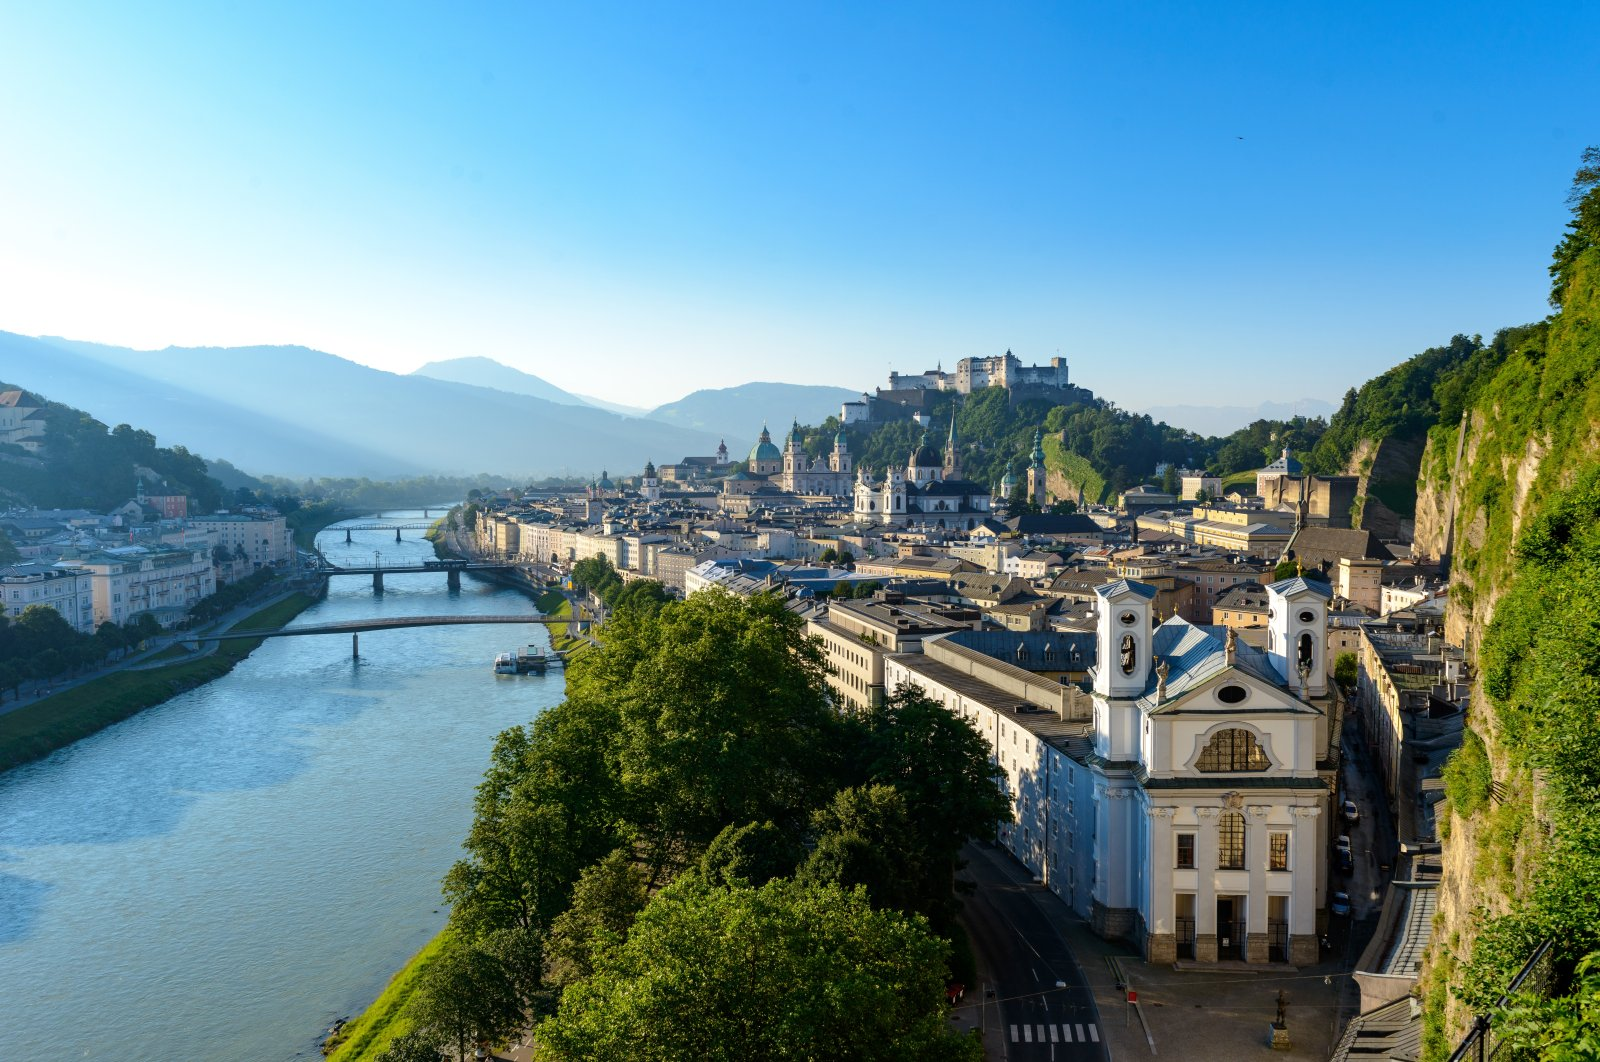 From the Moenchsberg, tourists can get a good view of Salzburg's old town. (G.Breitegger/Tourismus Salzburg GmbH/dpa Photo)